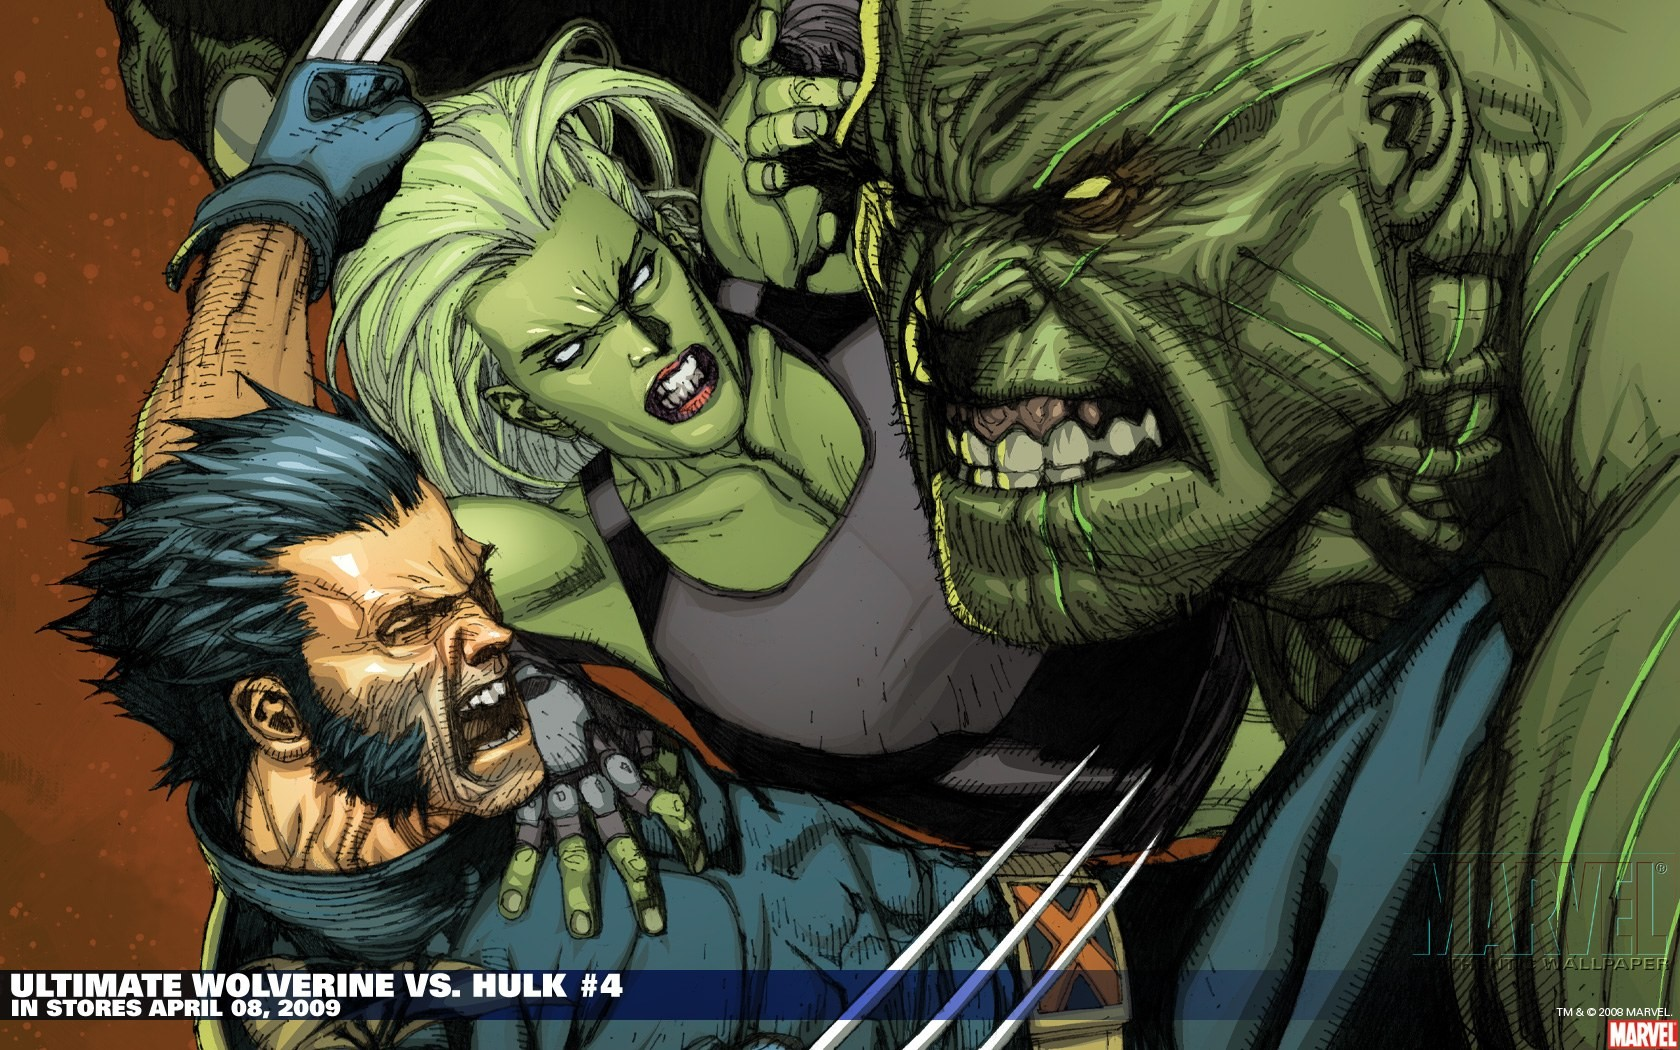 THE HULK Vs WOLVERINE Desktop And Mobile Wallpaper Wallippo